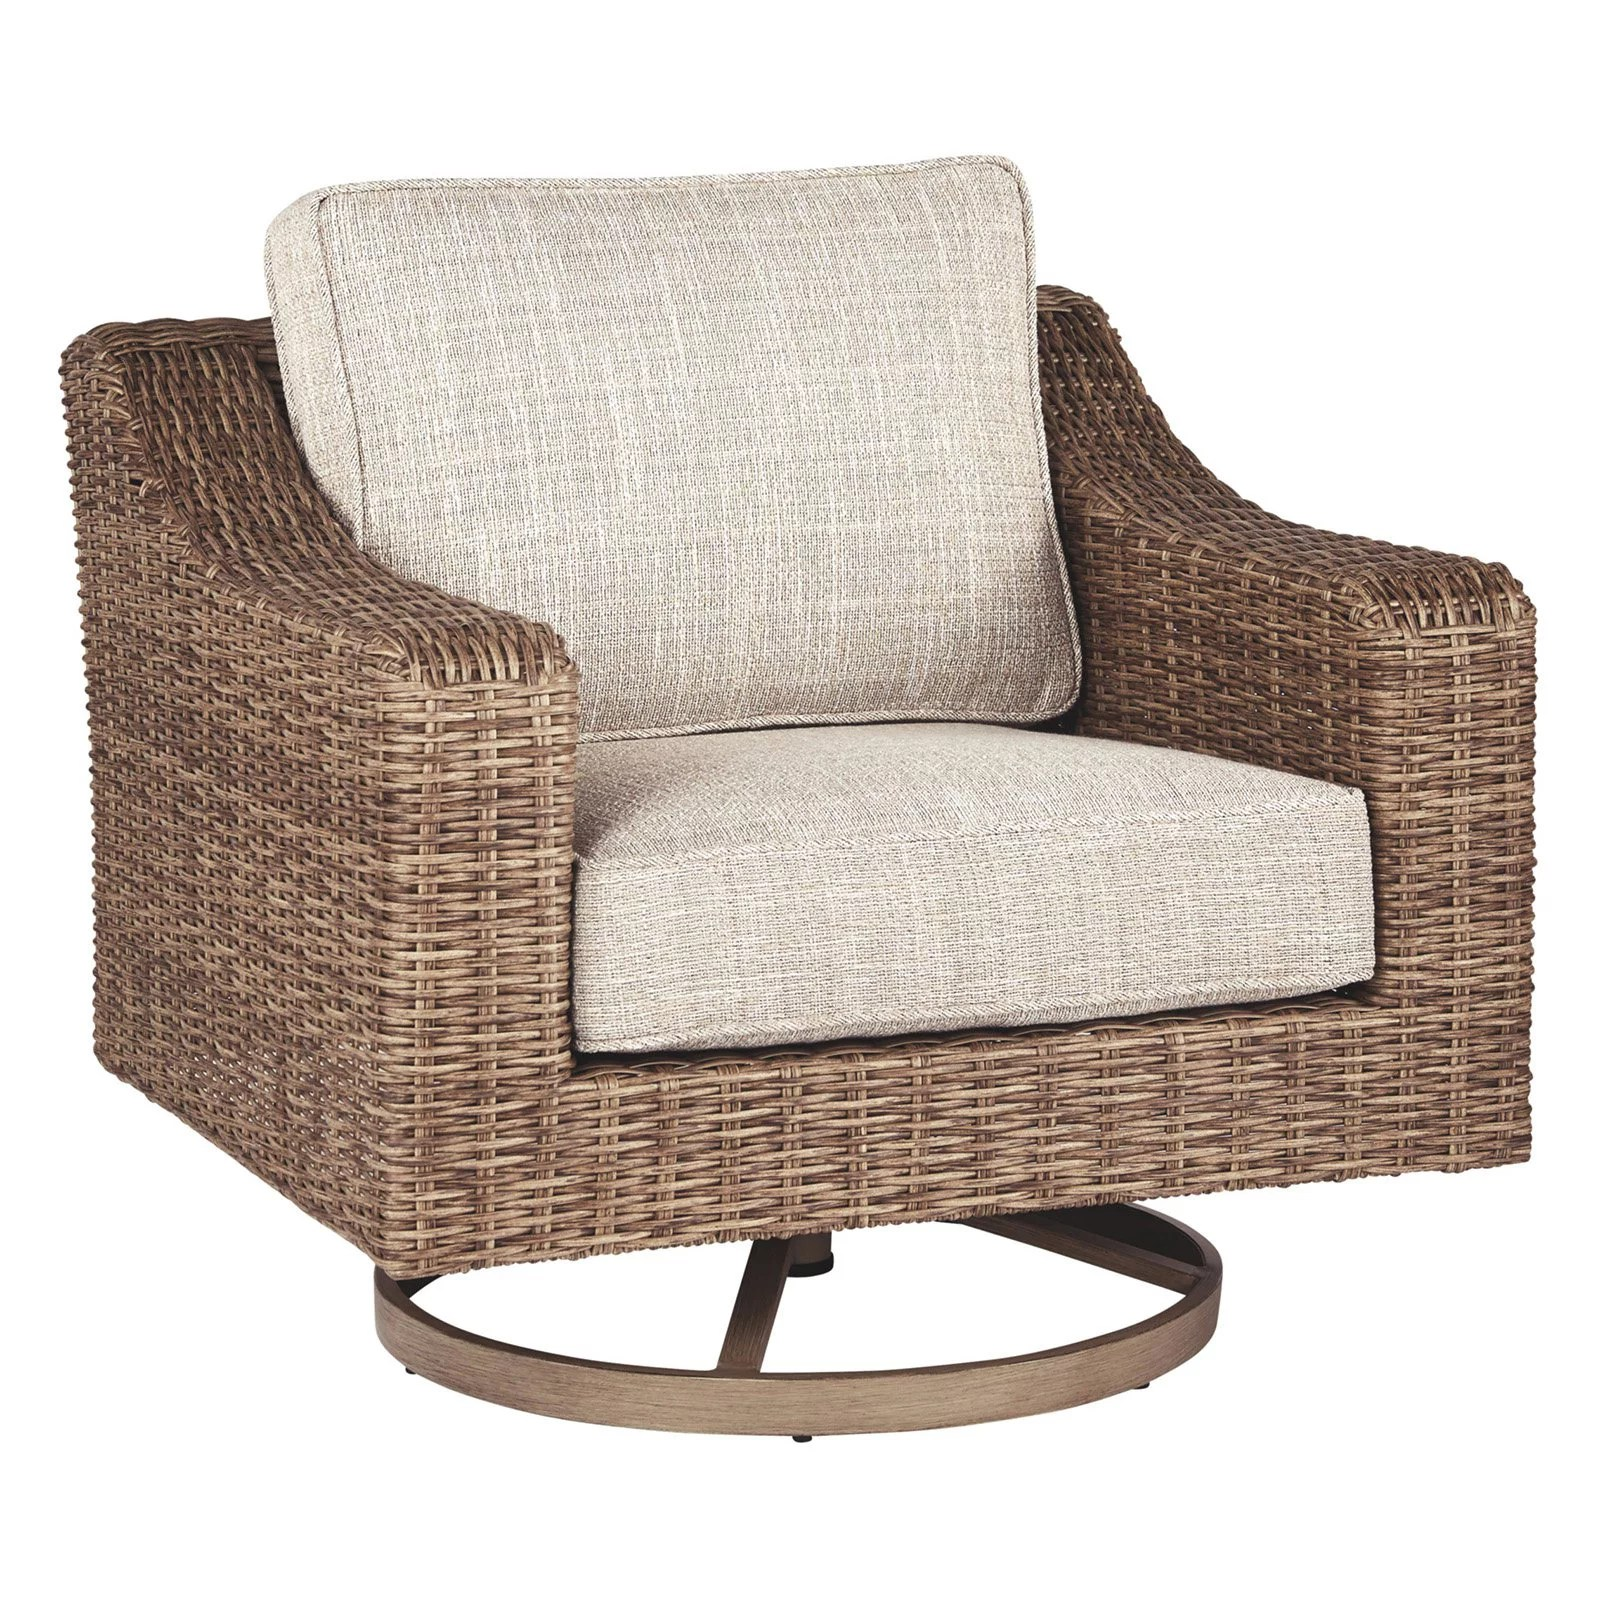 signature design by ashley beachcroft wicker swivel patio lounge chair with cushion